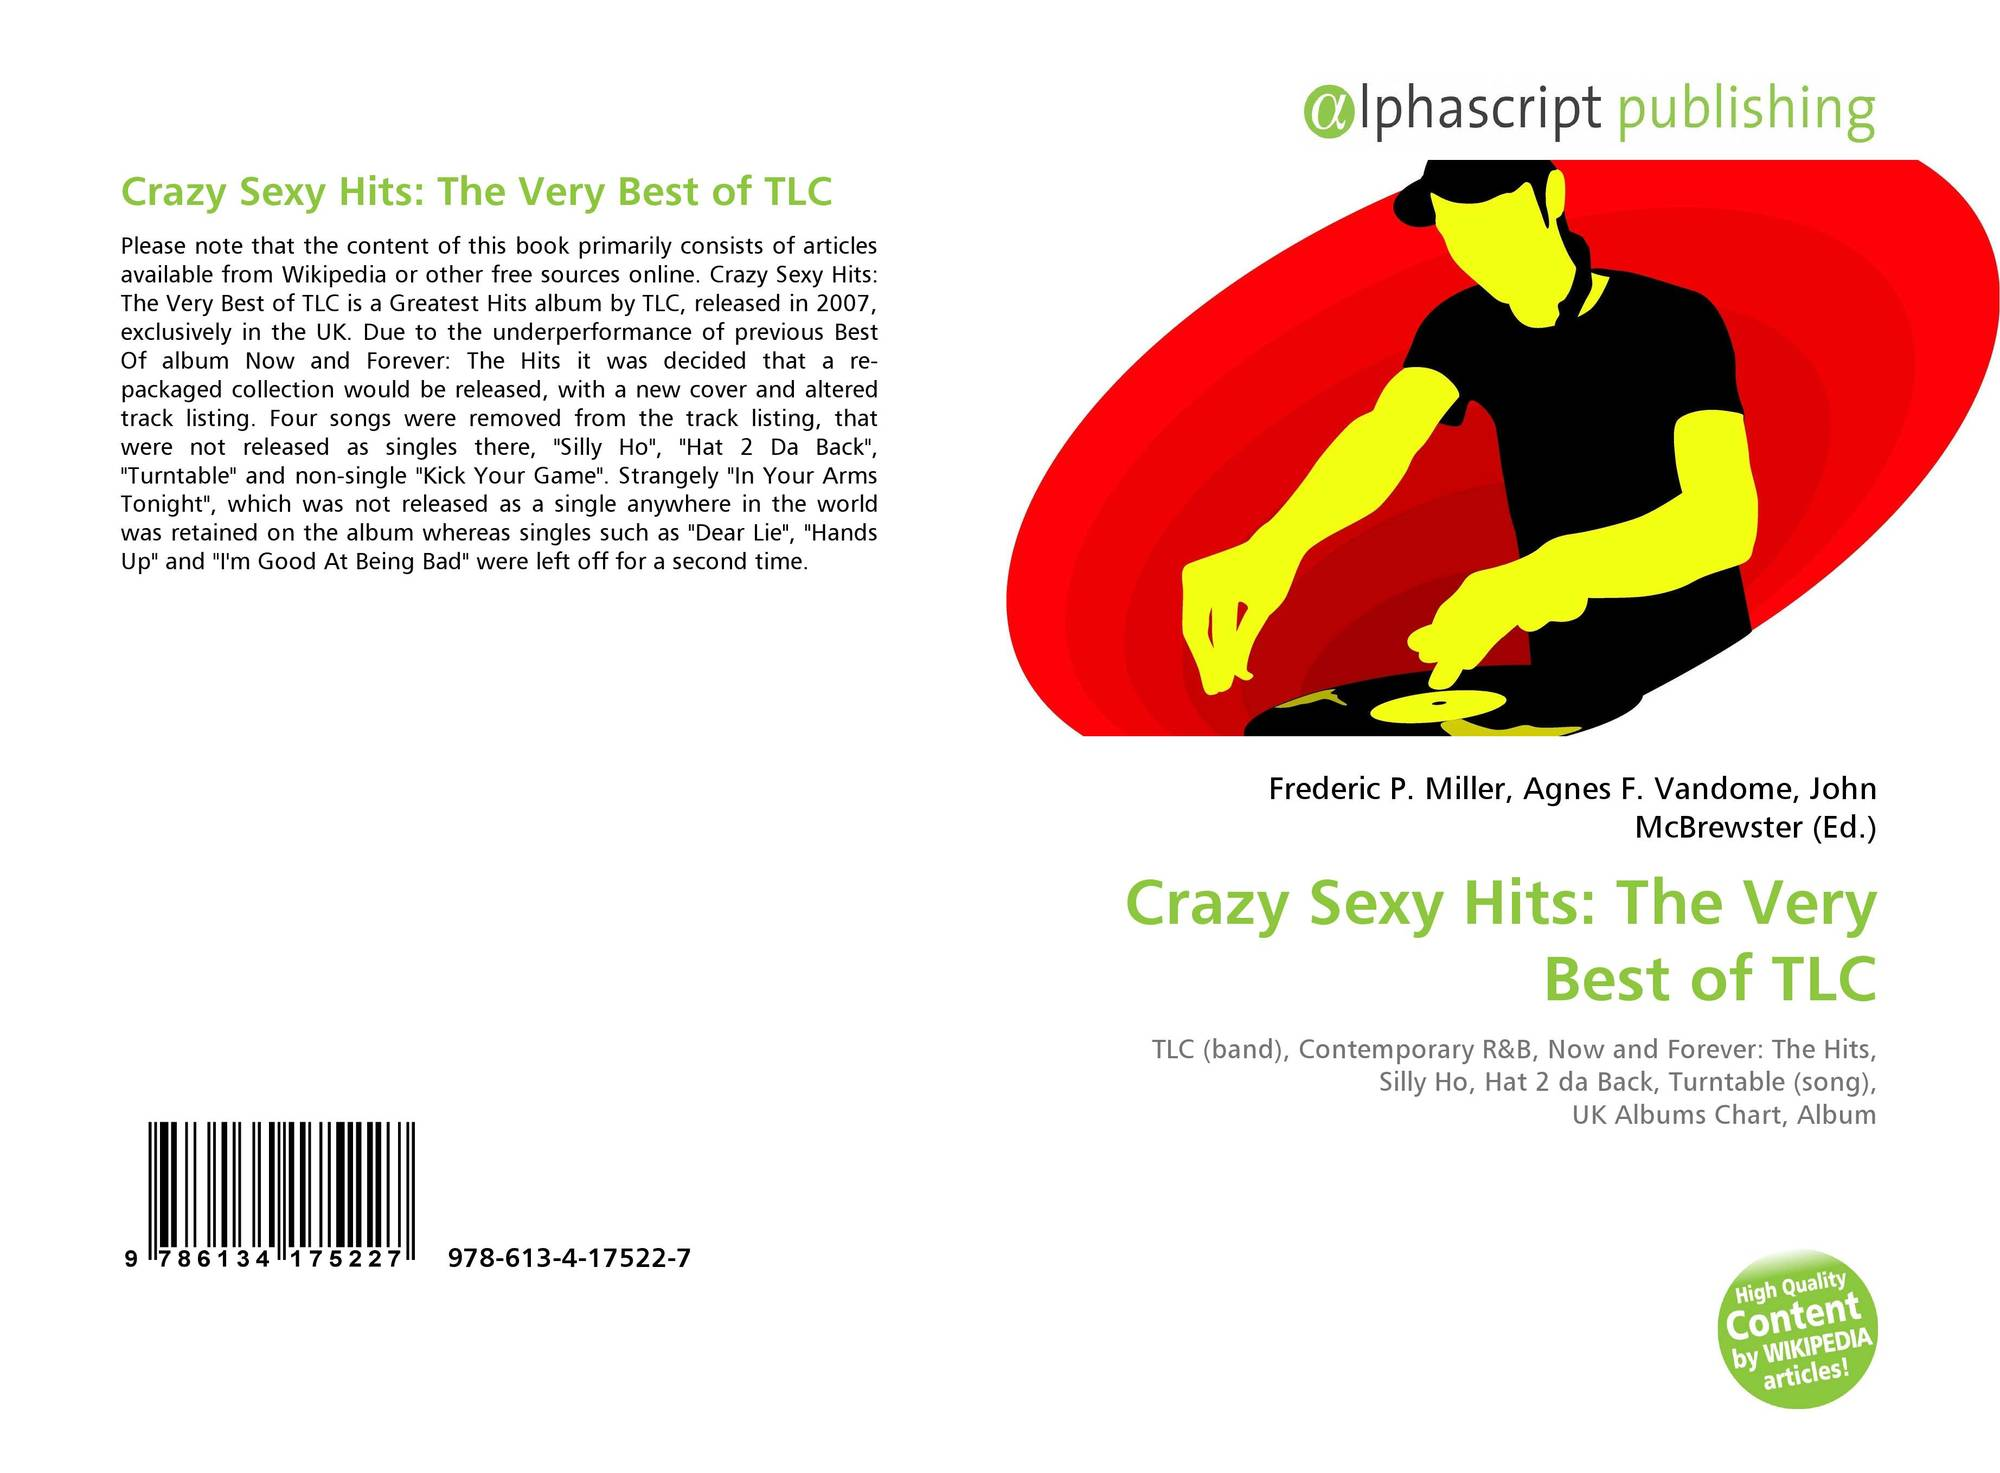 Crazy Sexy Hits: The Very Best of TLC, 978-613-4-17522-7